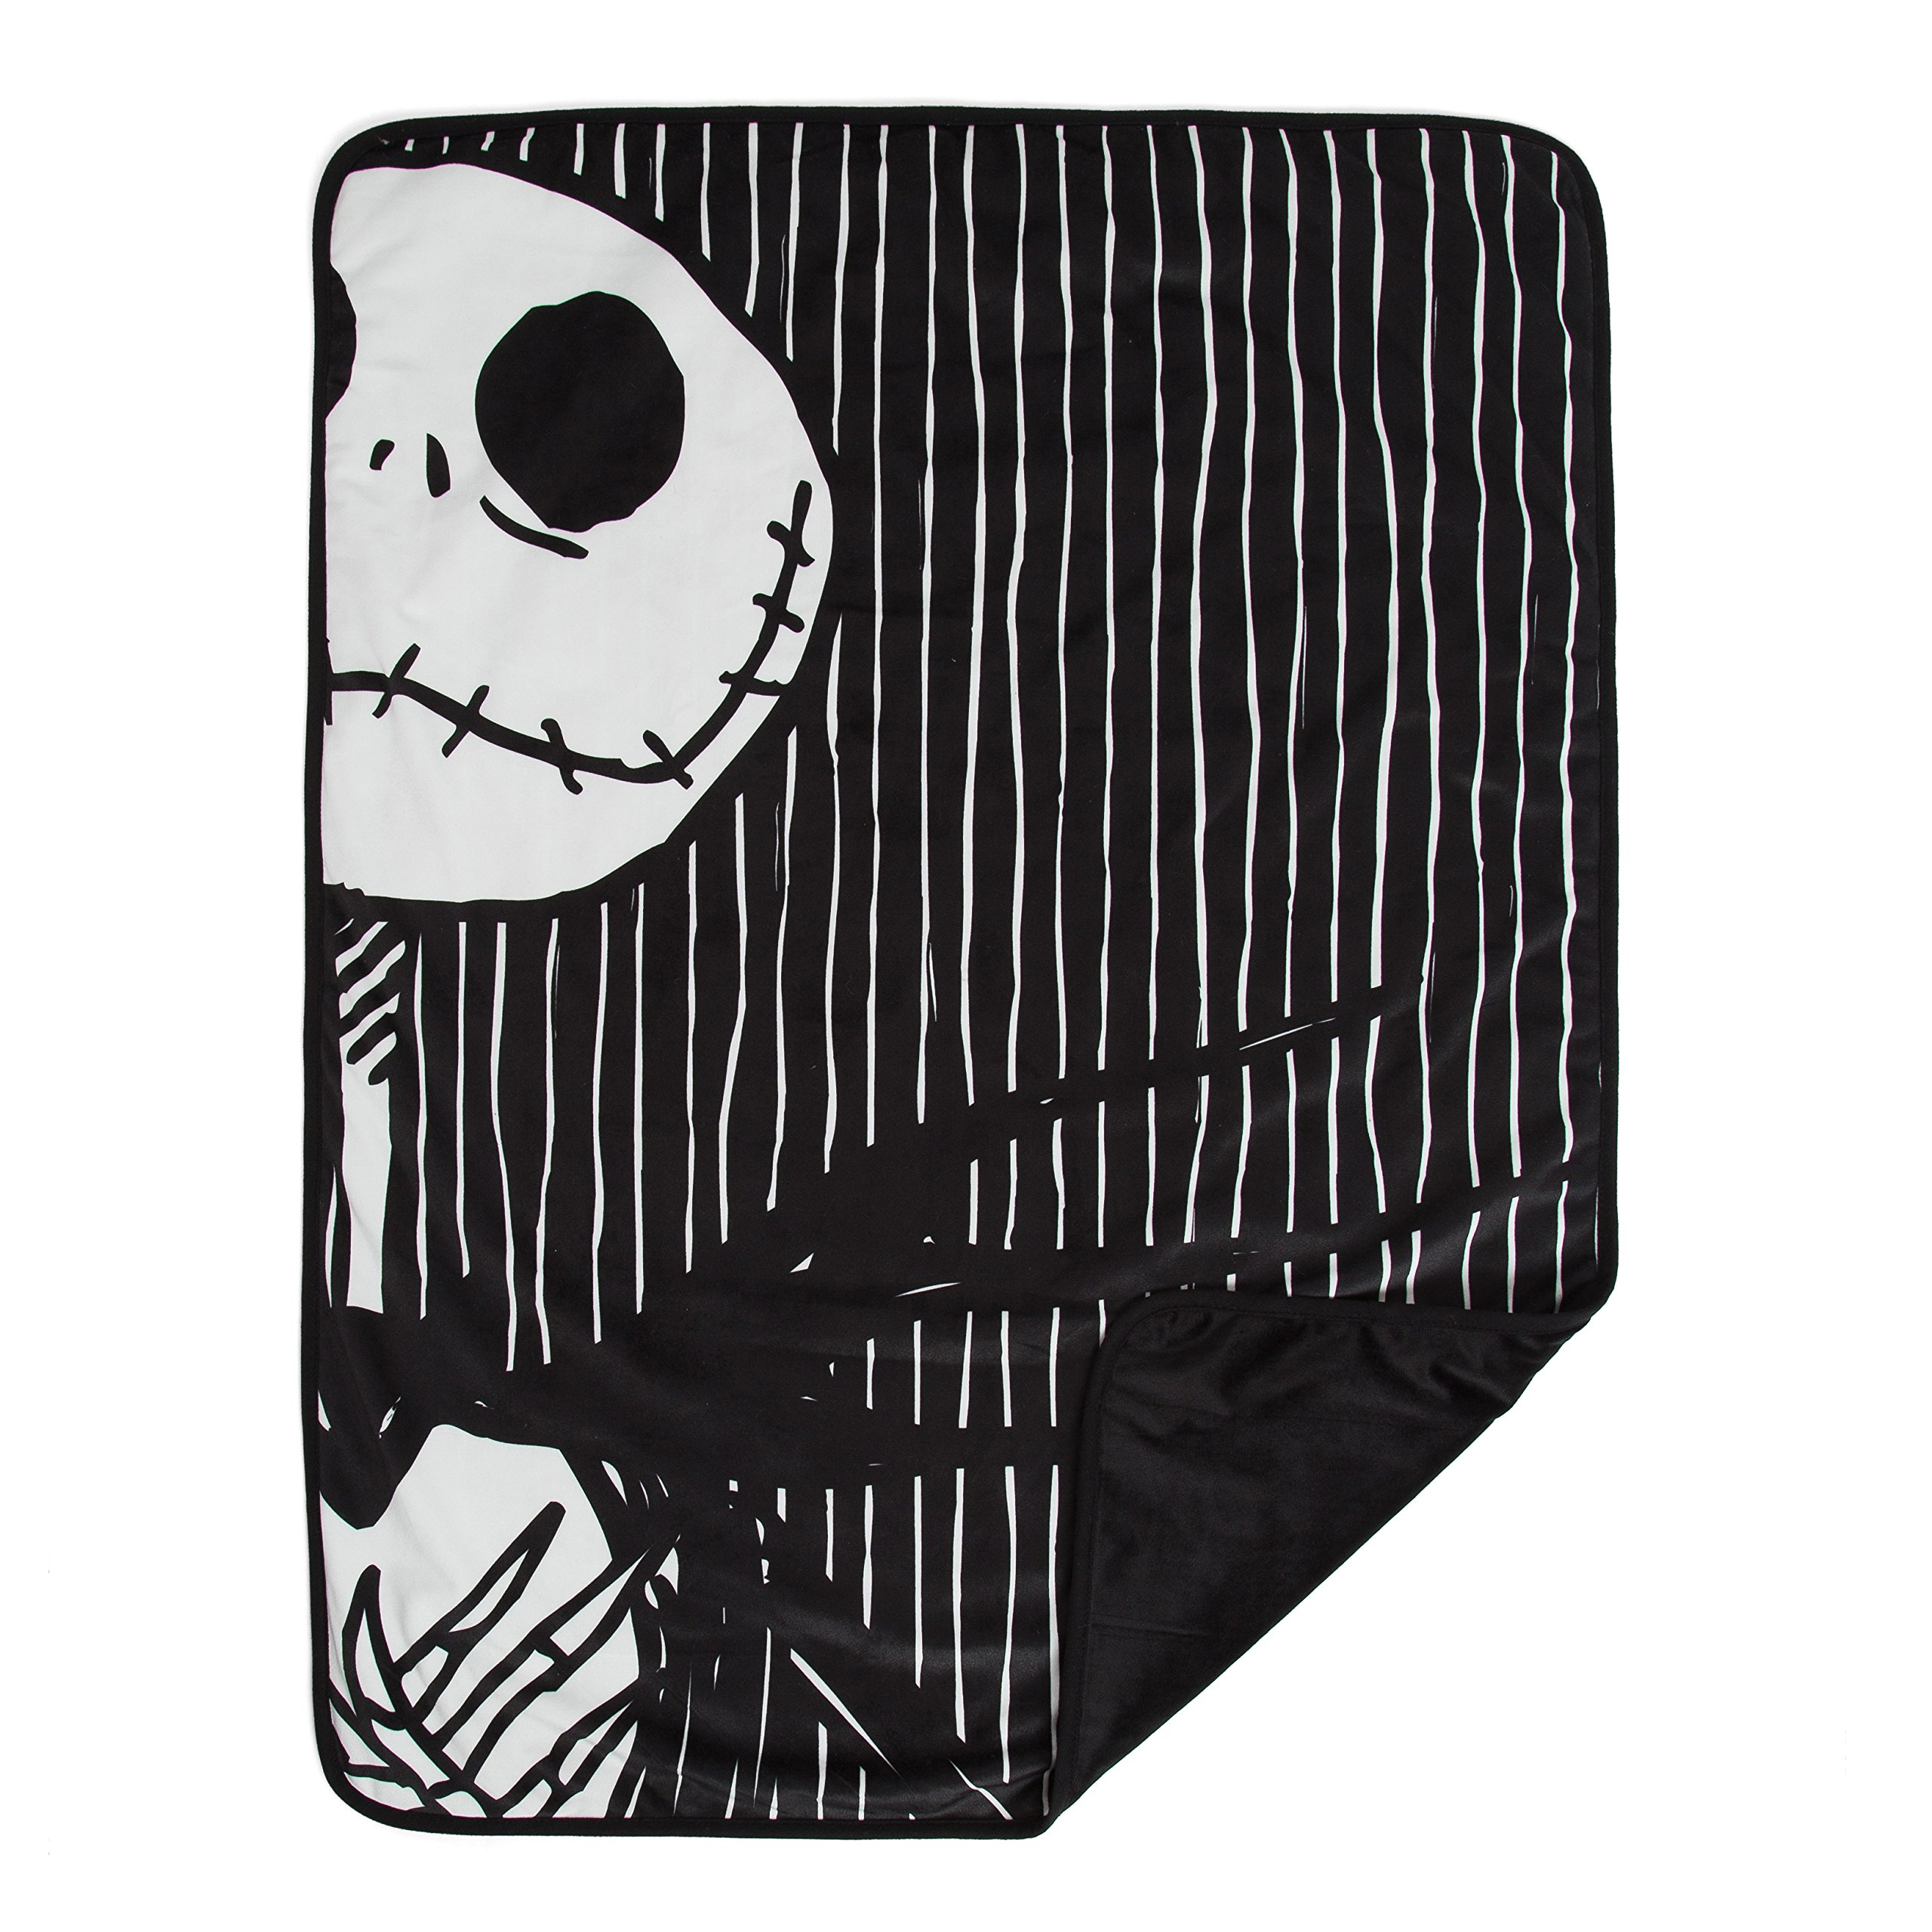 "Disney Nightmare Before Christmas Jack Skellington Luxury Multi-Functional Pet Throw Blanket, Portable Dog/Cat Mat, 30""x40"", Collector's Edition"